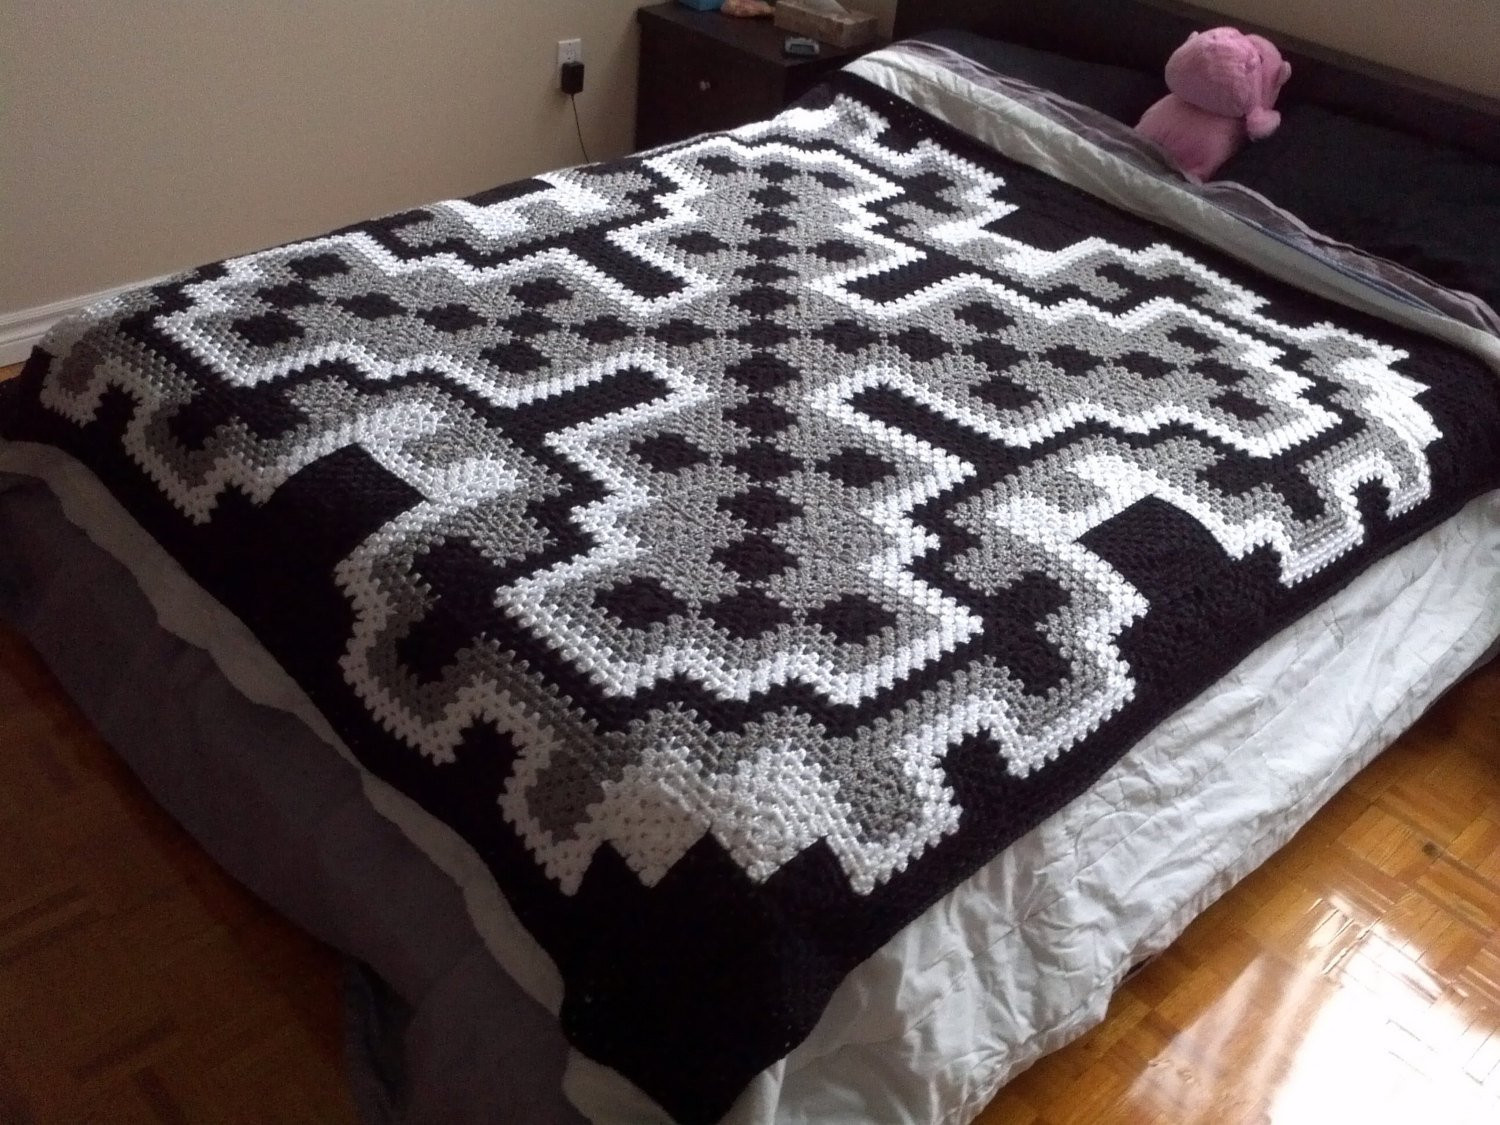 Unique Crochet Blanket Pattern Pdf Frost Queen Blanket Granny Crochet Square Blanket Patterns Of Lovely 43 Pictures Crochet Square Blanket Patterns